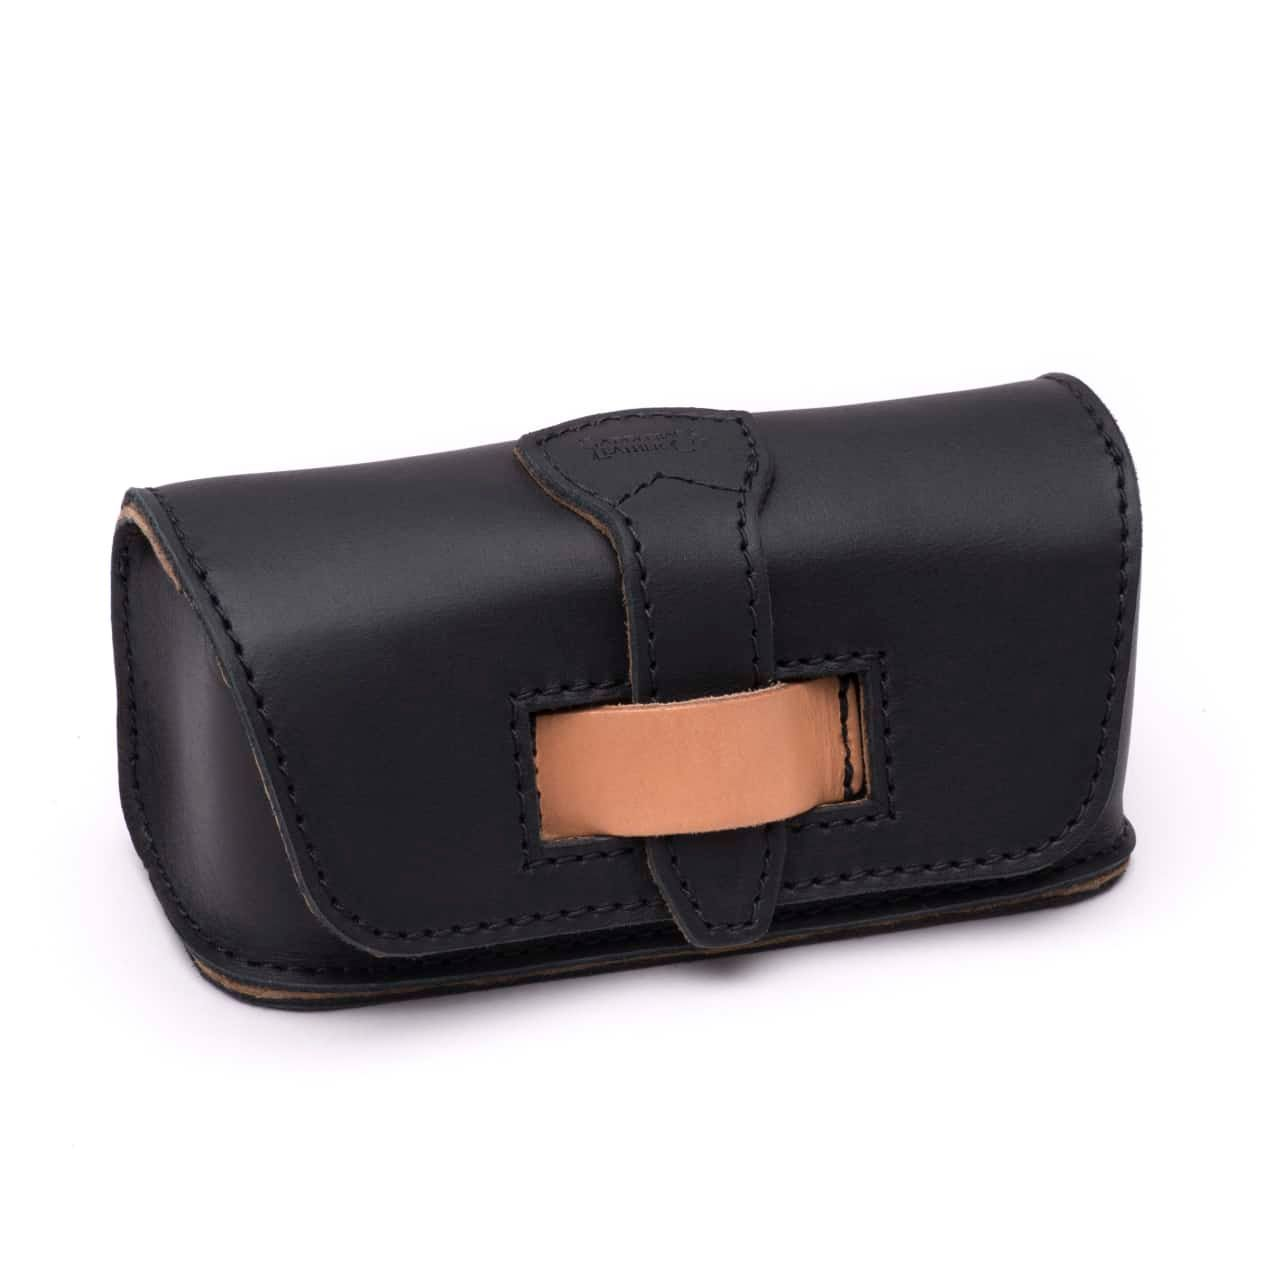 Hard Sunglass Case - Black